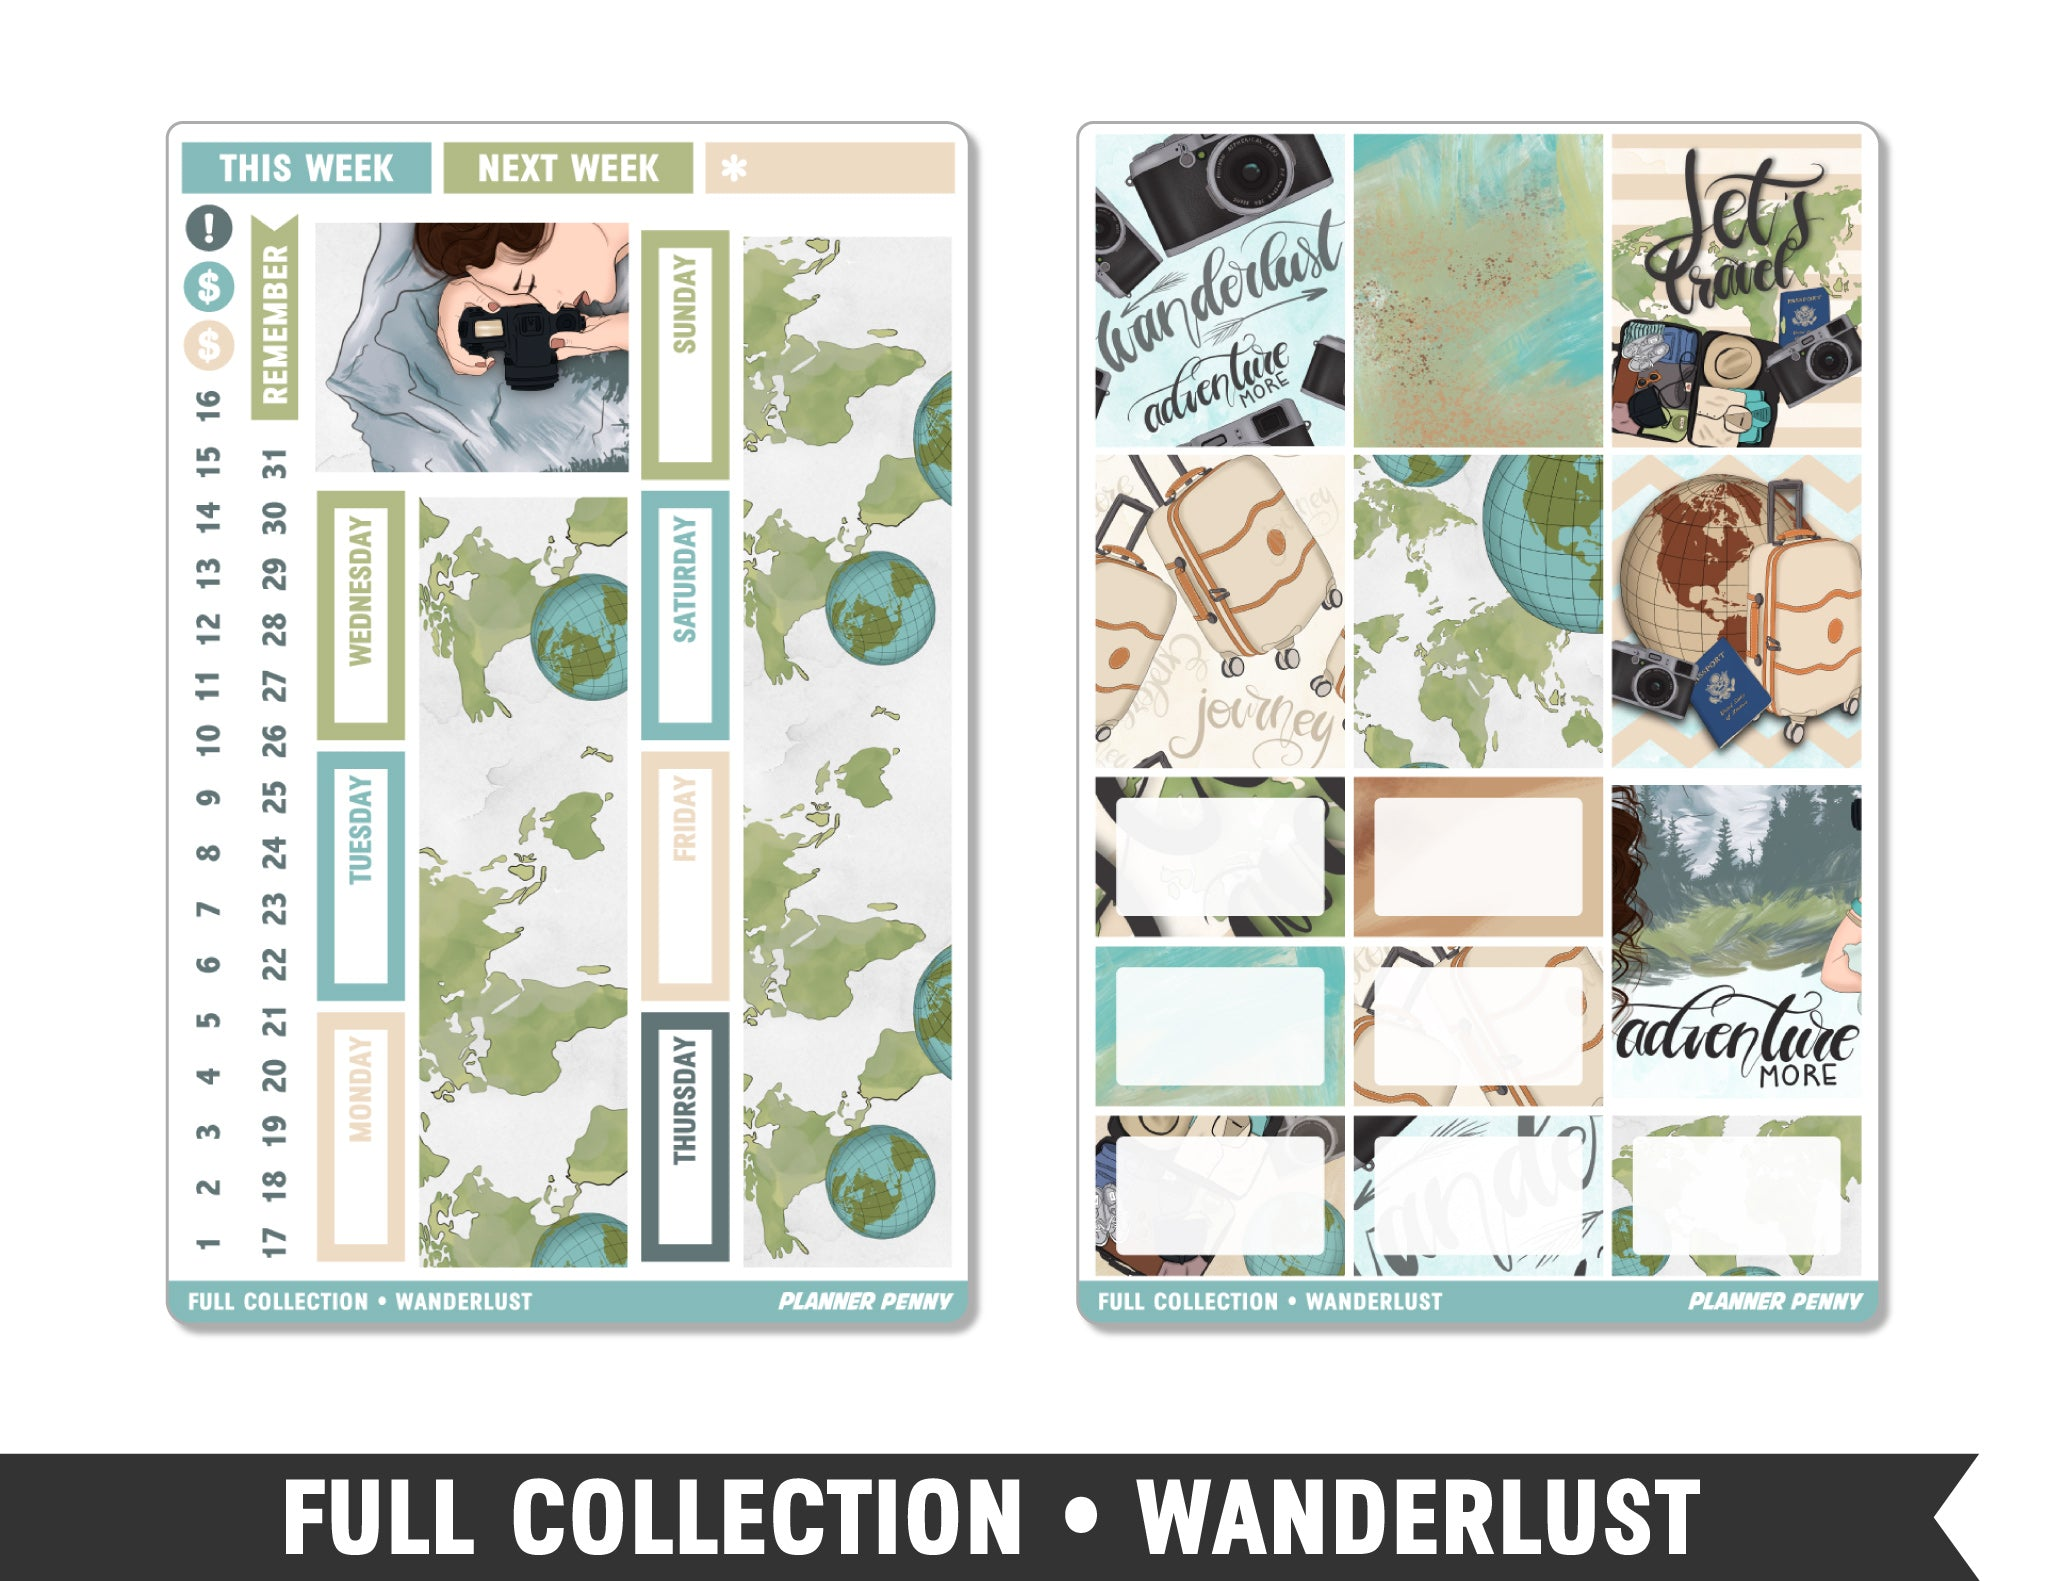 Full Collection • Wanderlust • Weekly Spread Planner Stickers - Planner Penny